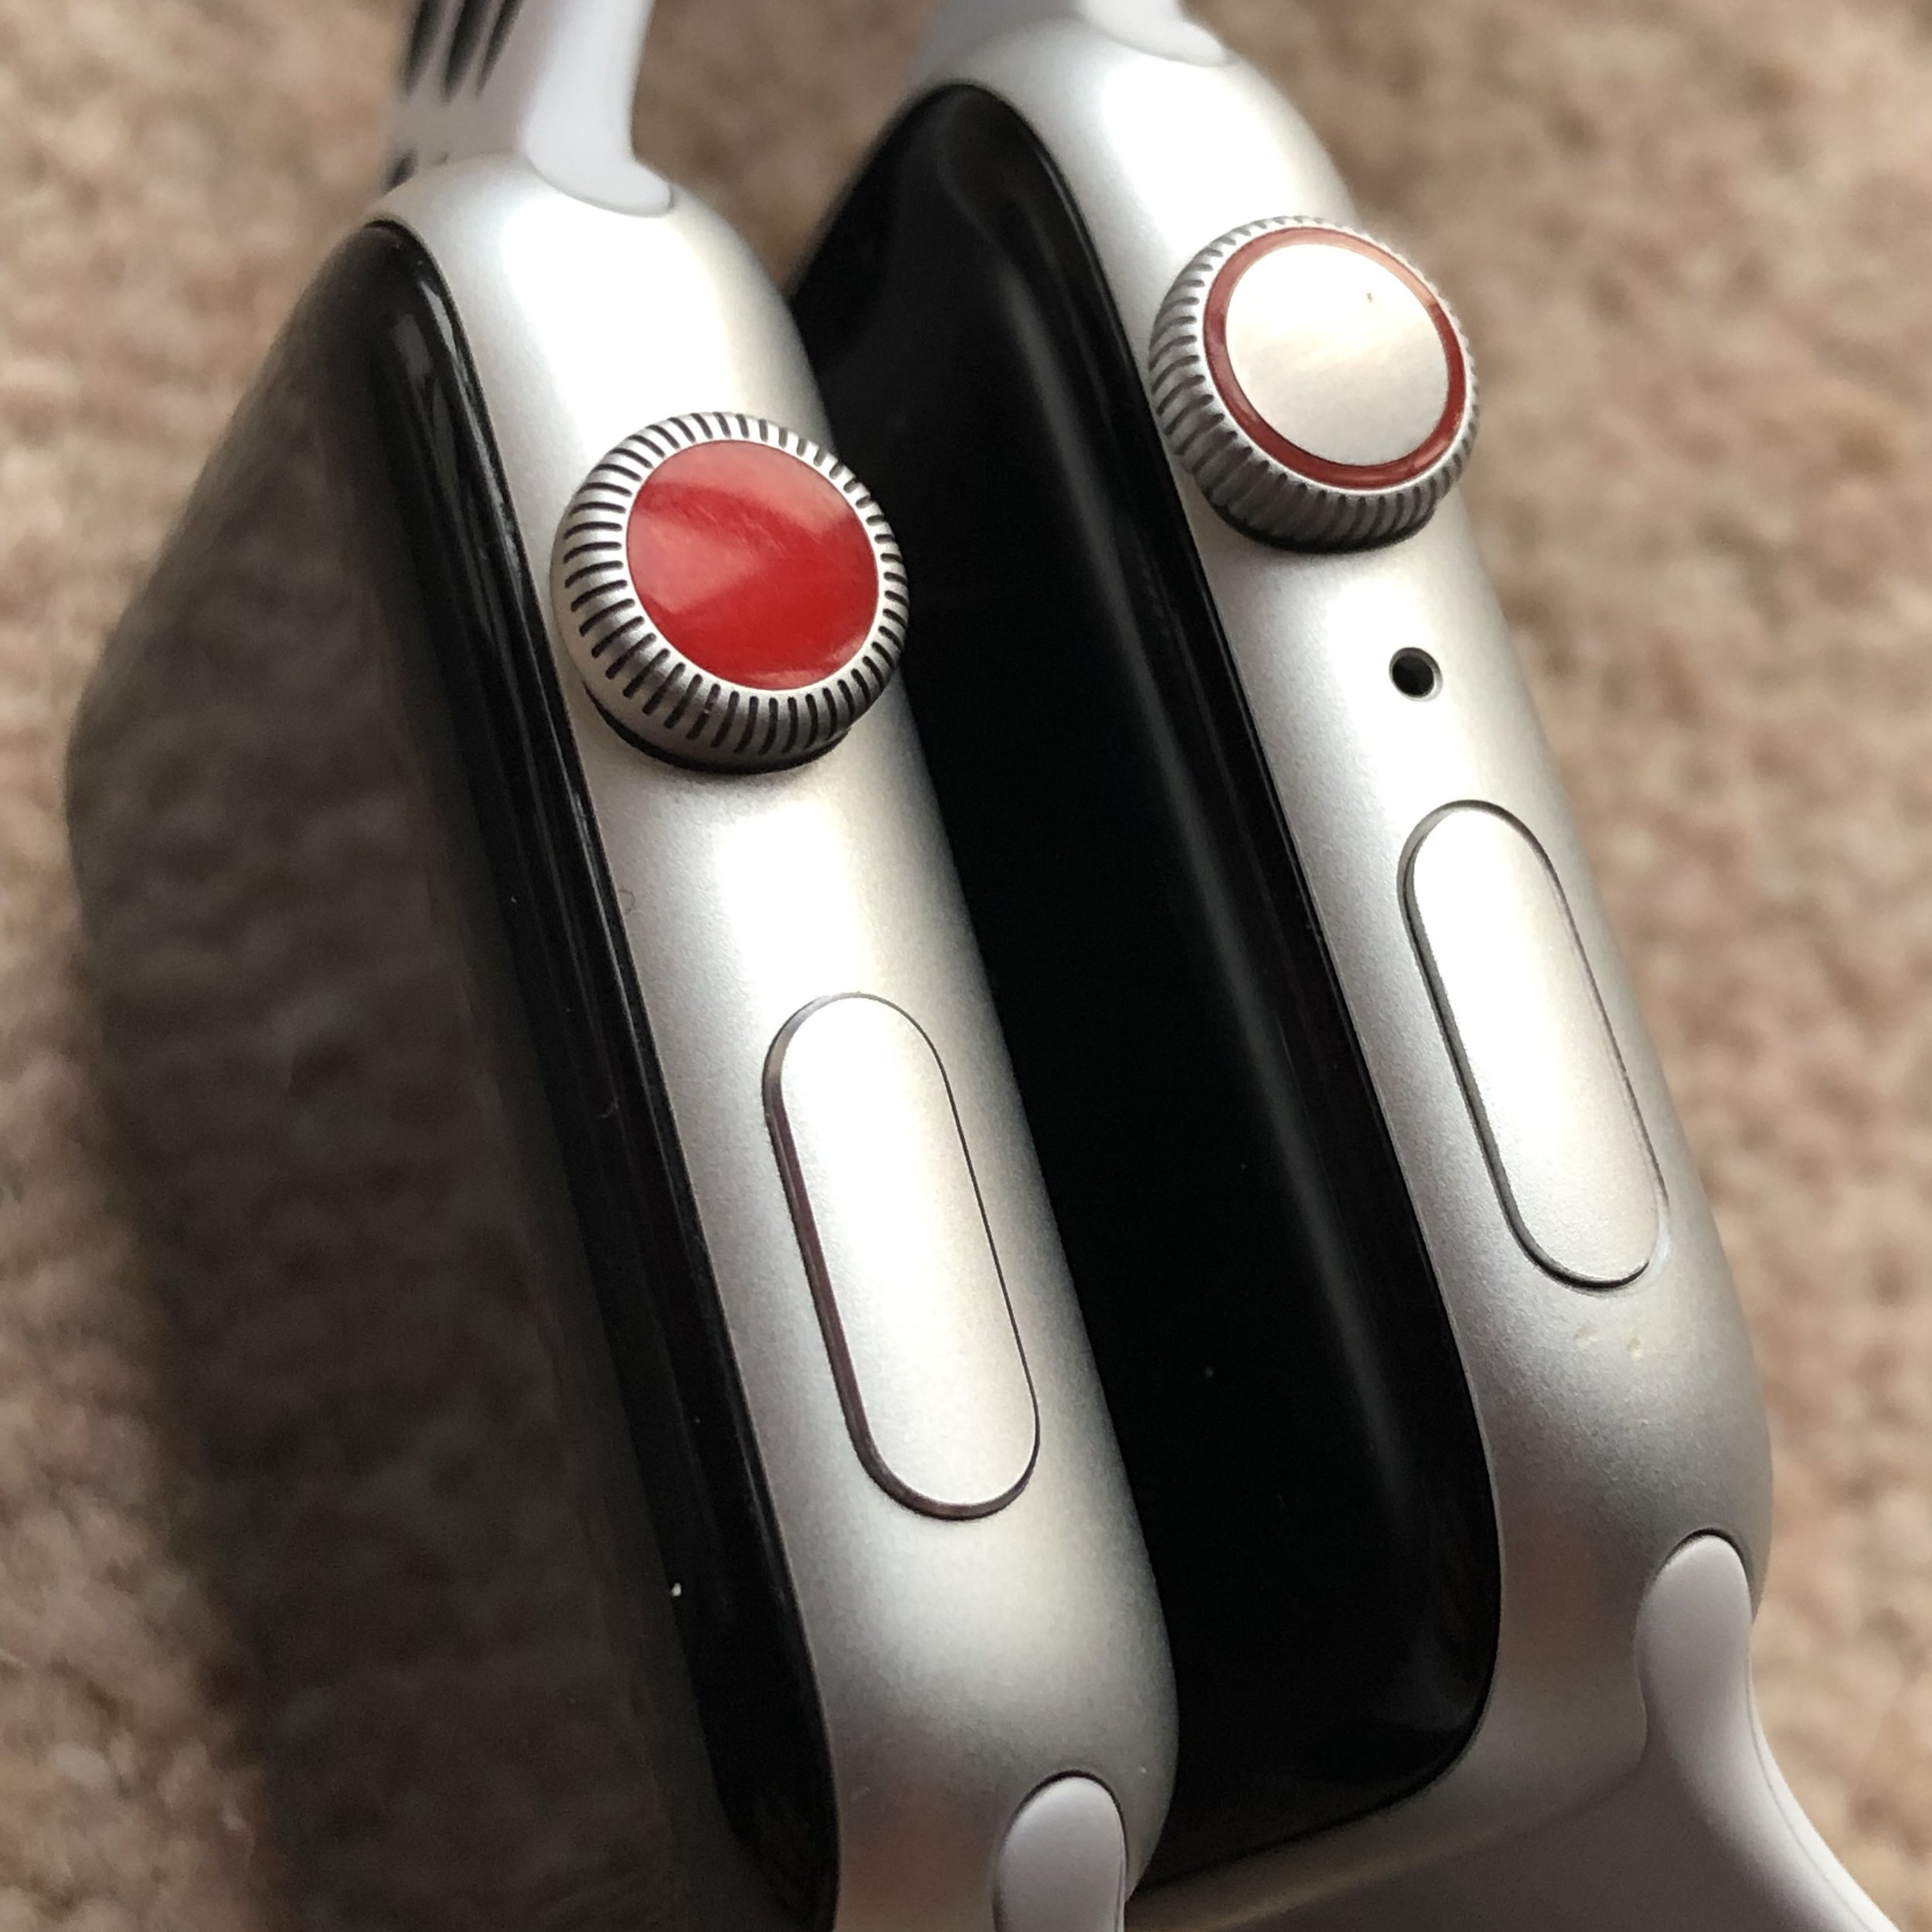 Red dot is now a red ring